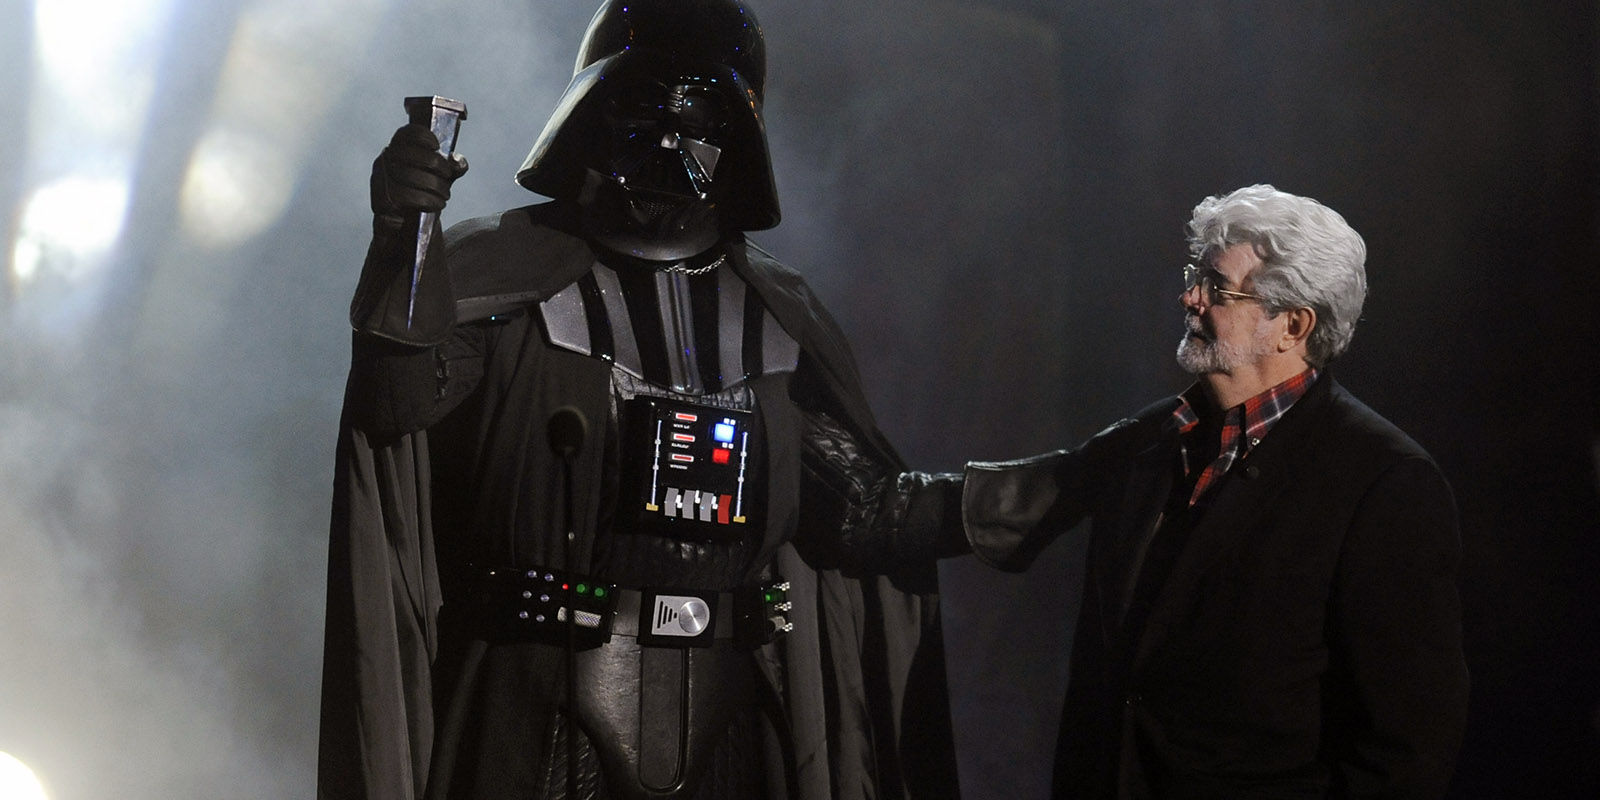 George-Lucas-Darth-Vader-Star-Wars